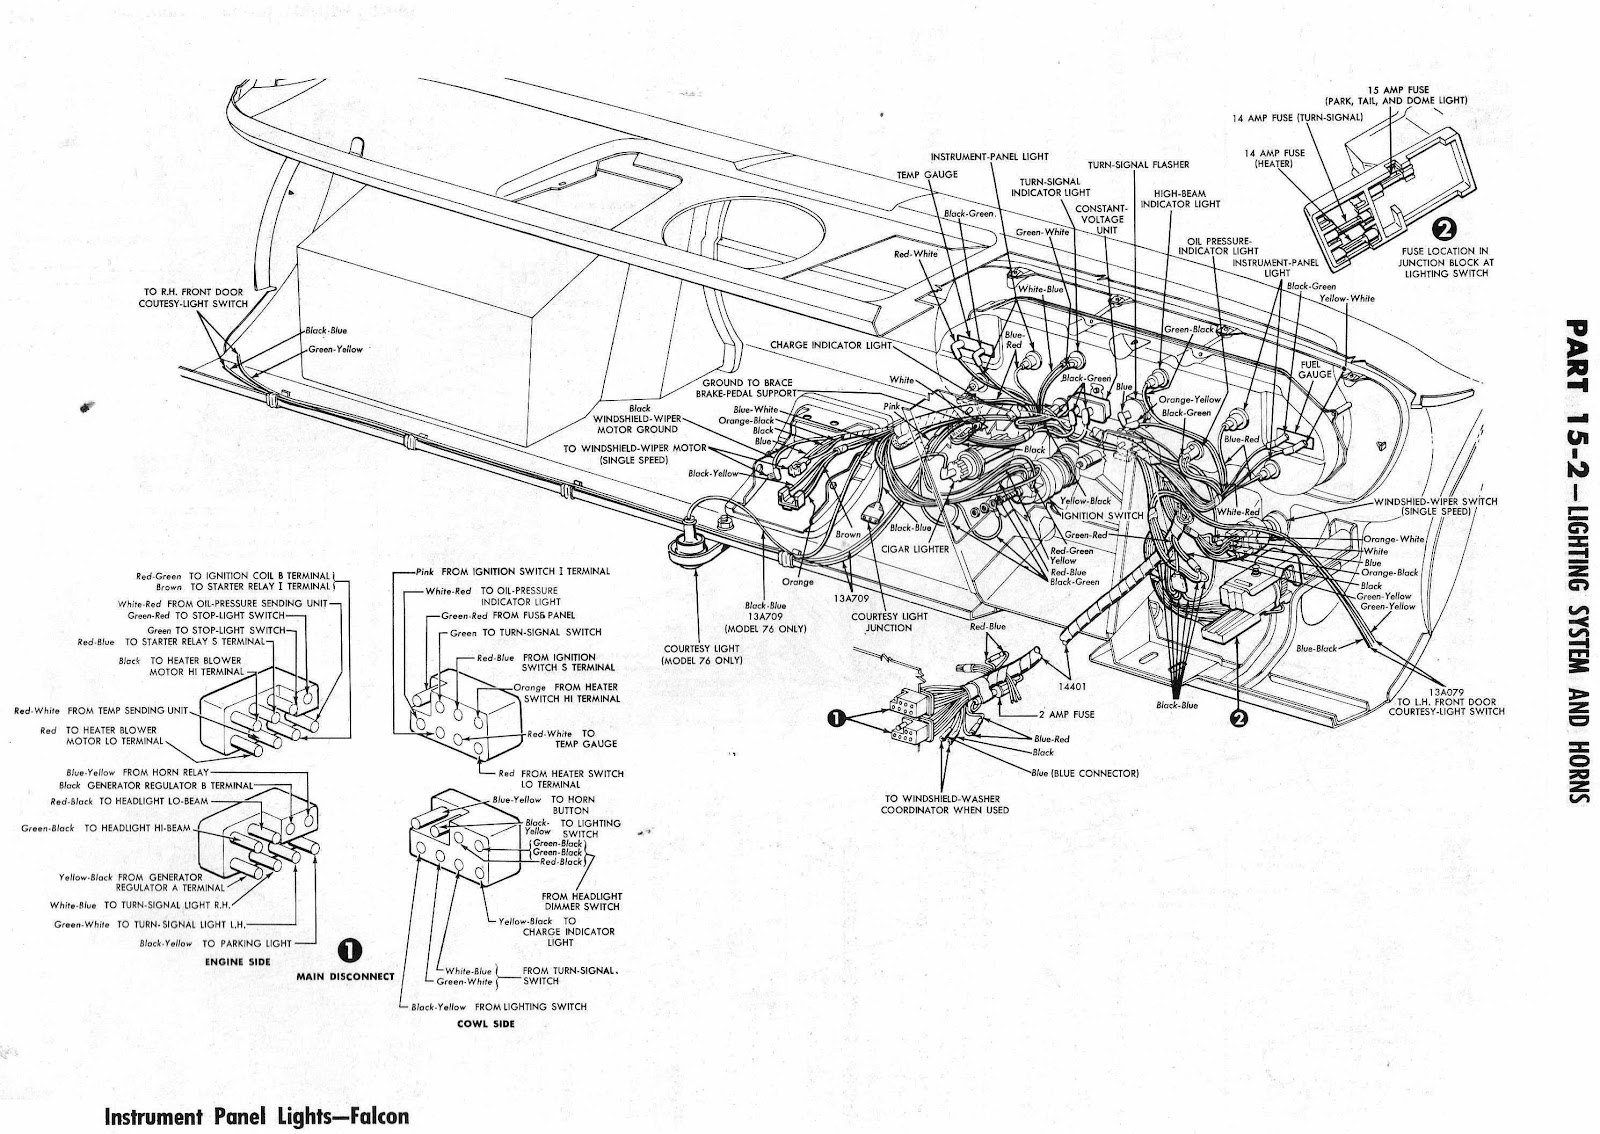 Ford+Falcon+1964+Lighting+System+and+Horns+Wiring+Diagram au falcon wiring diagram falcon guide \u2022 wiring diagrams j squared co  at mr168.co